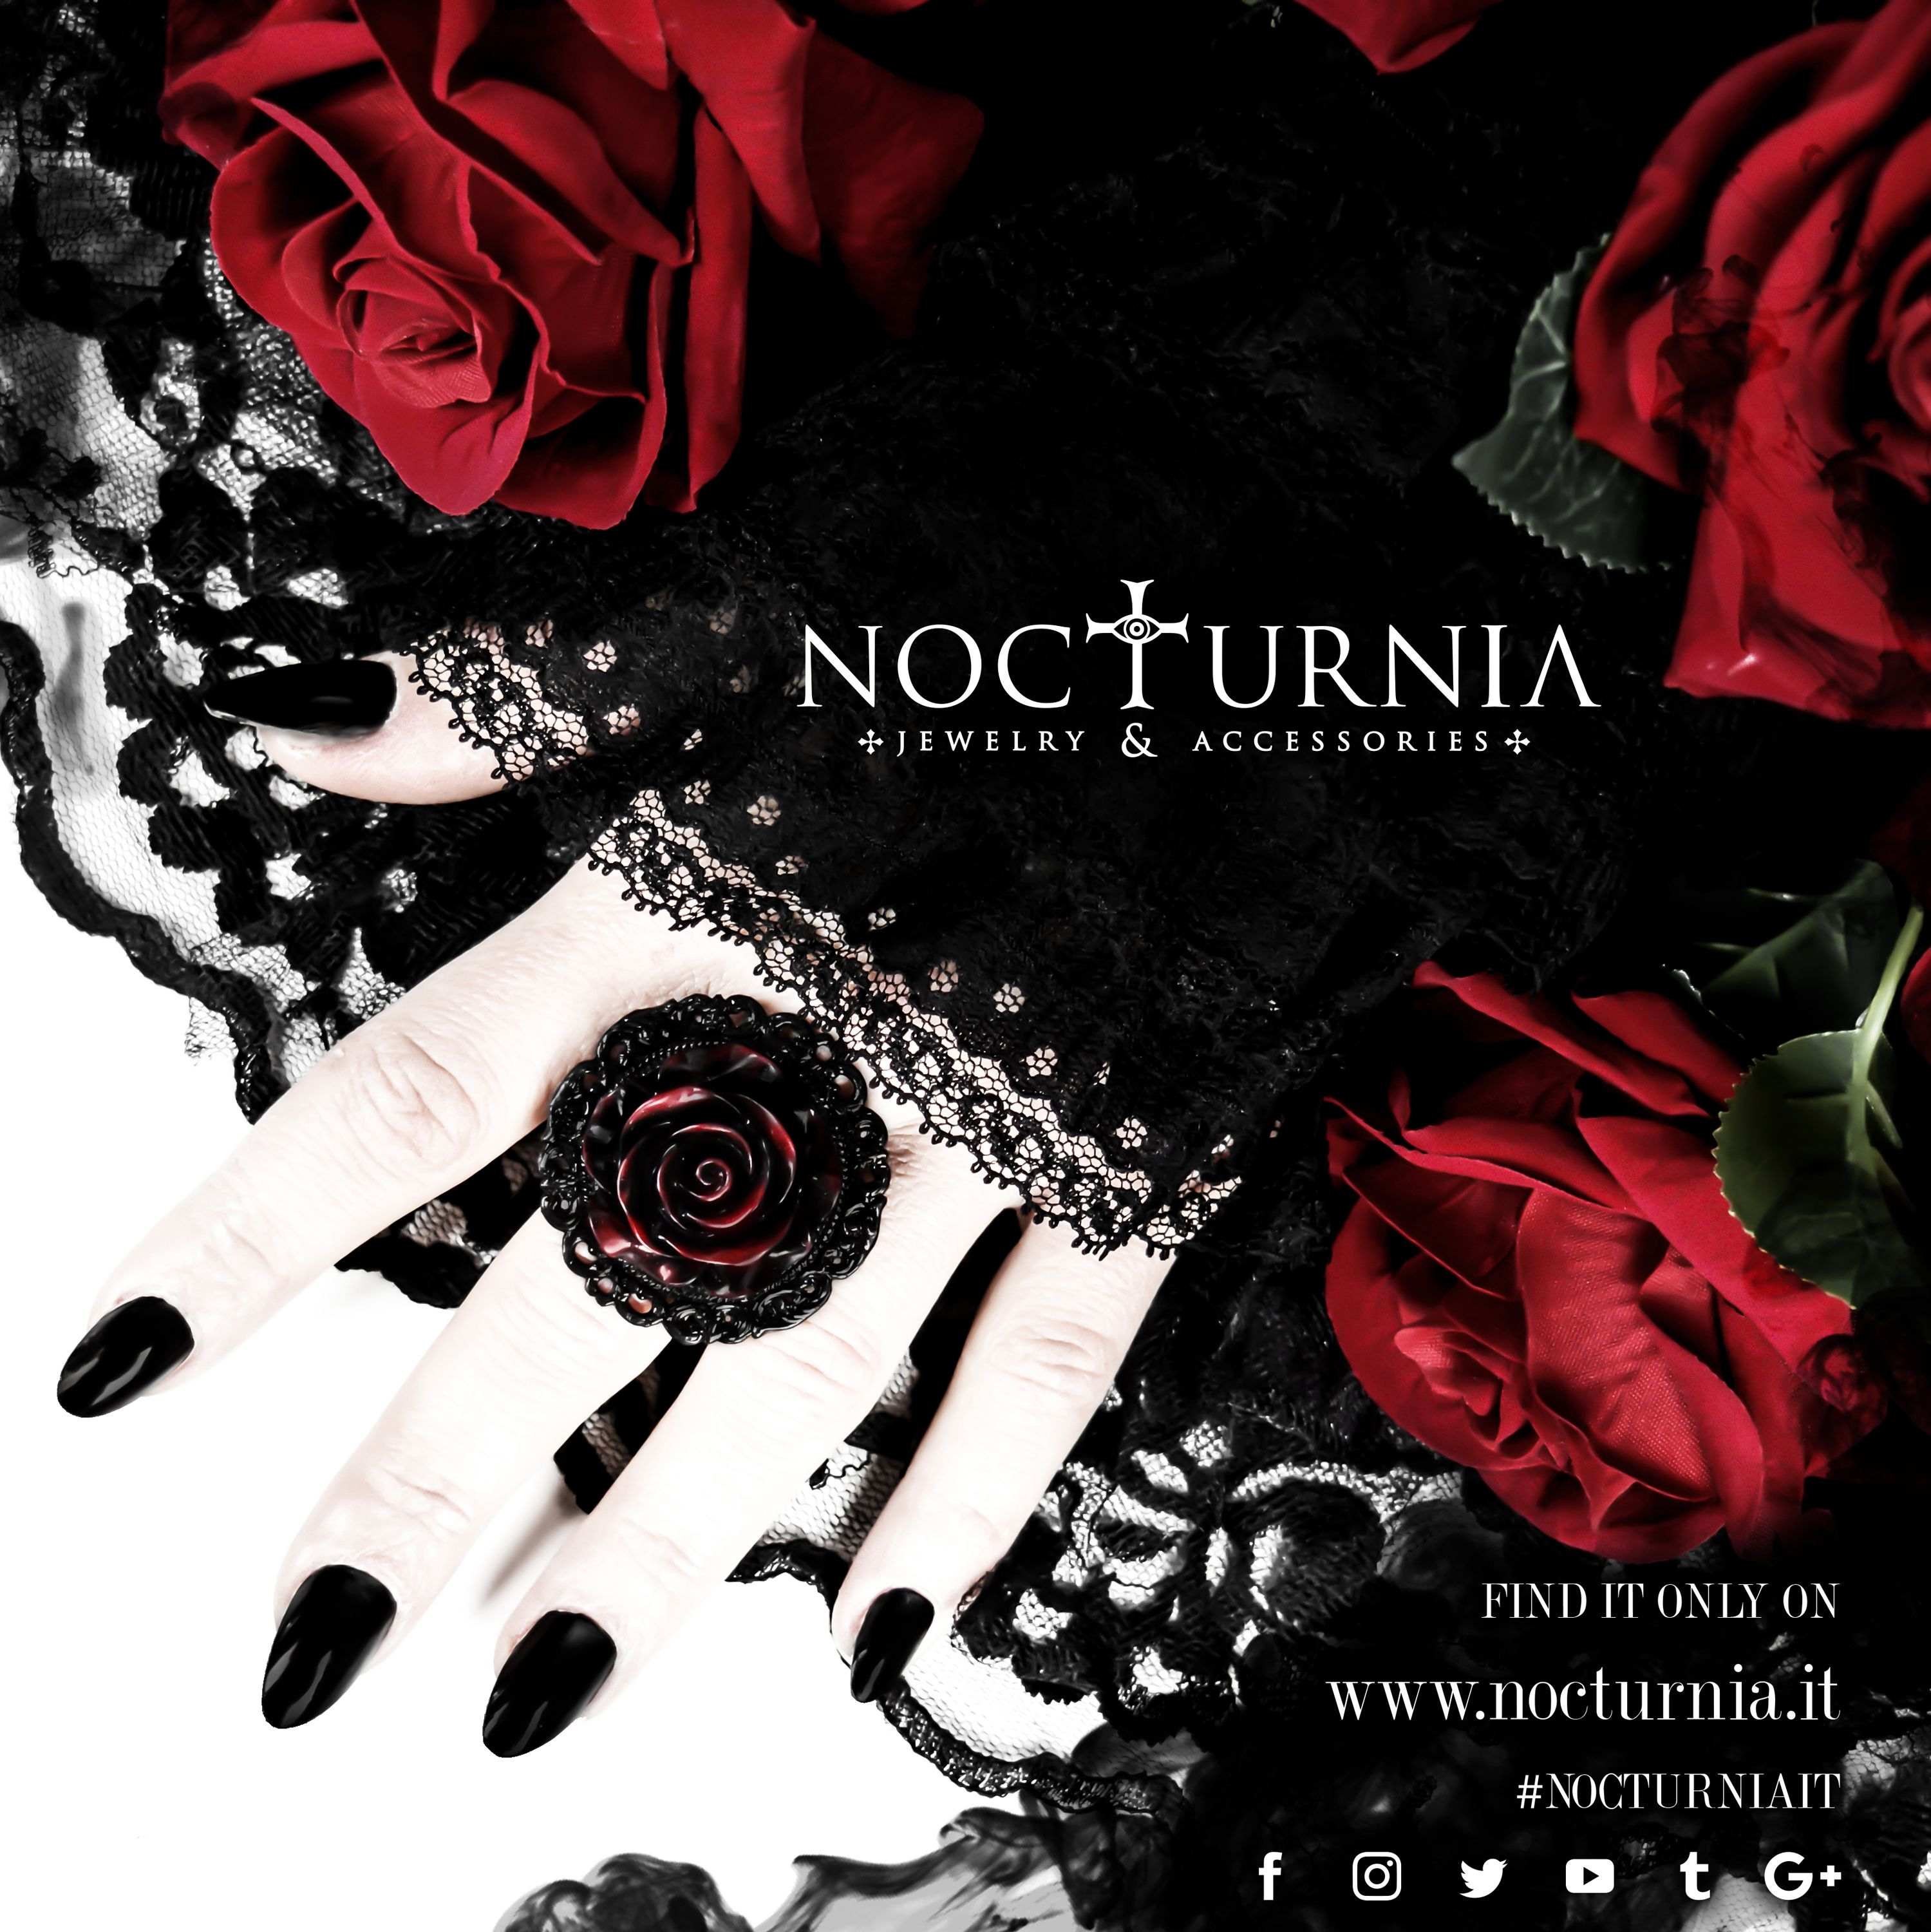 """The new ring by Nocturnia """"SHADES OF ROSE"""" ia available only here http://bit.ly/shadesofrosering Worldwide Shipping #nocturniait L'immagine può contenere: sMS"""